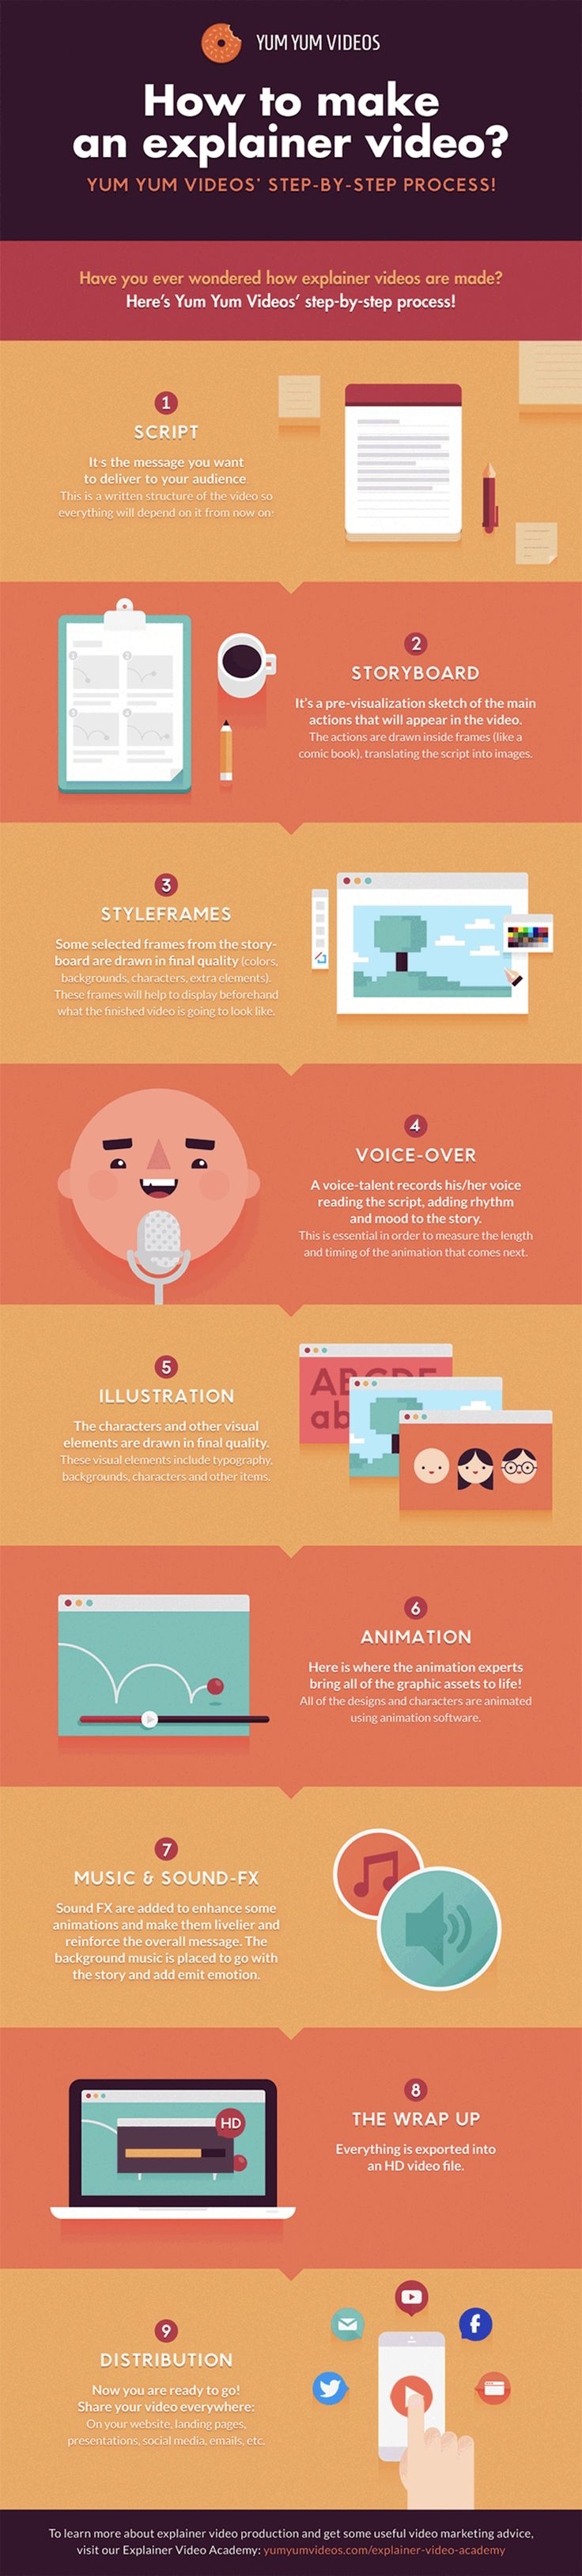 How to Make an Explainer Video: Step-by-Step Instructions [INFOGRAPHIC] http://snip.ly/j3lE?utm_content=buffer6aacf&utm_medium=social&utm_source=pinterest.com&utm_campaign=buffer